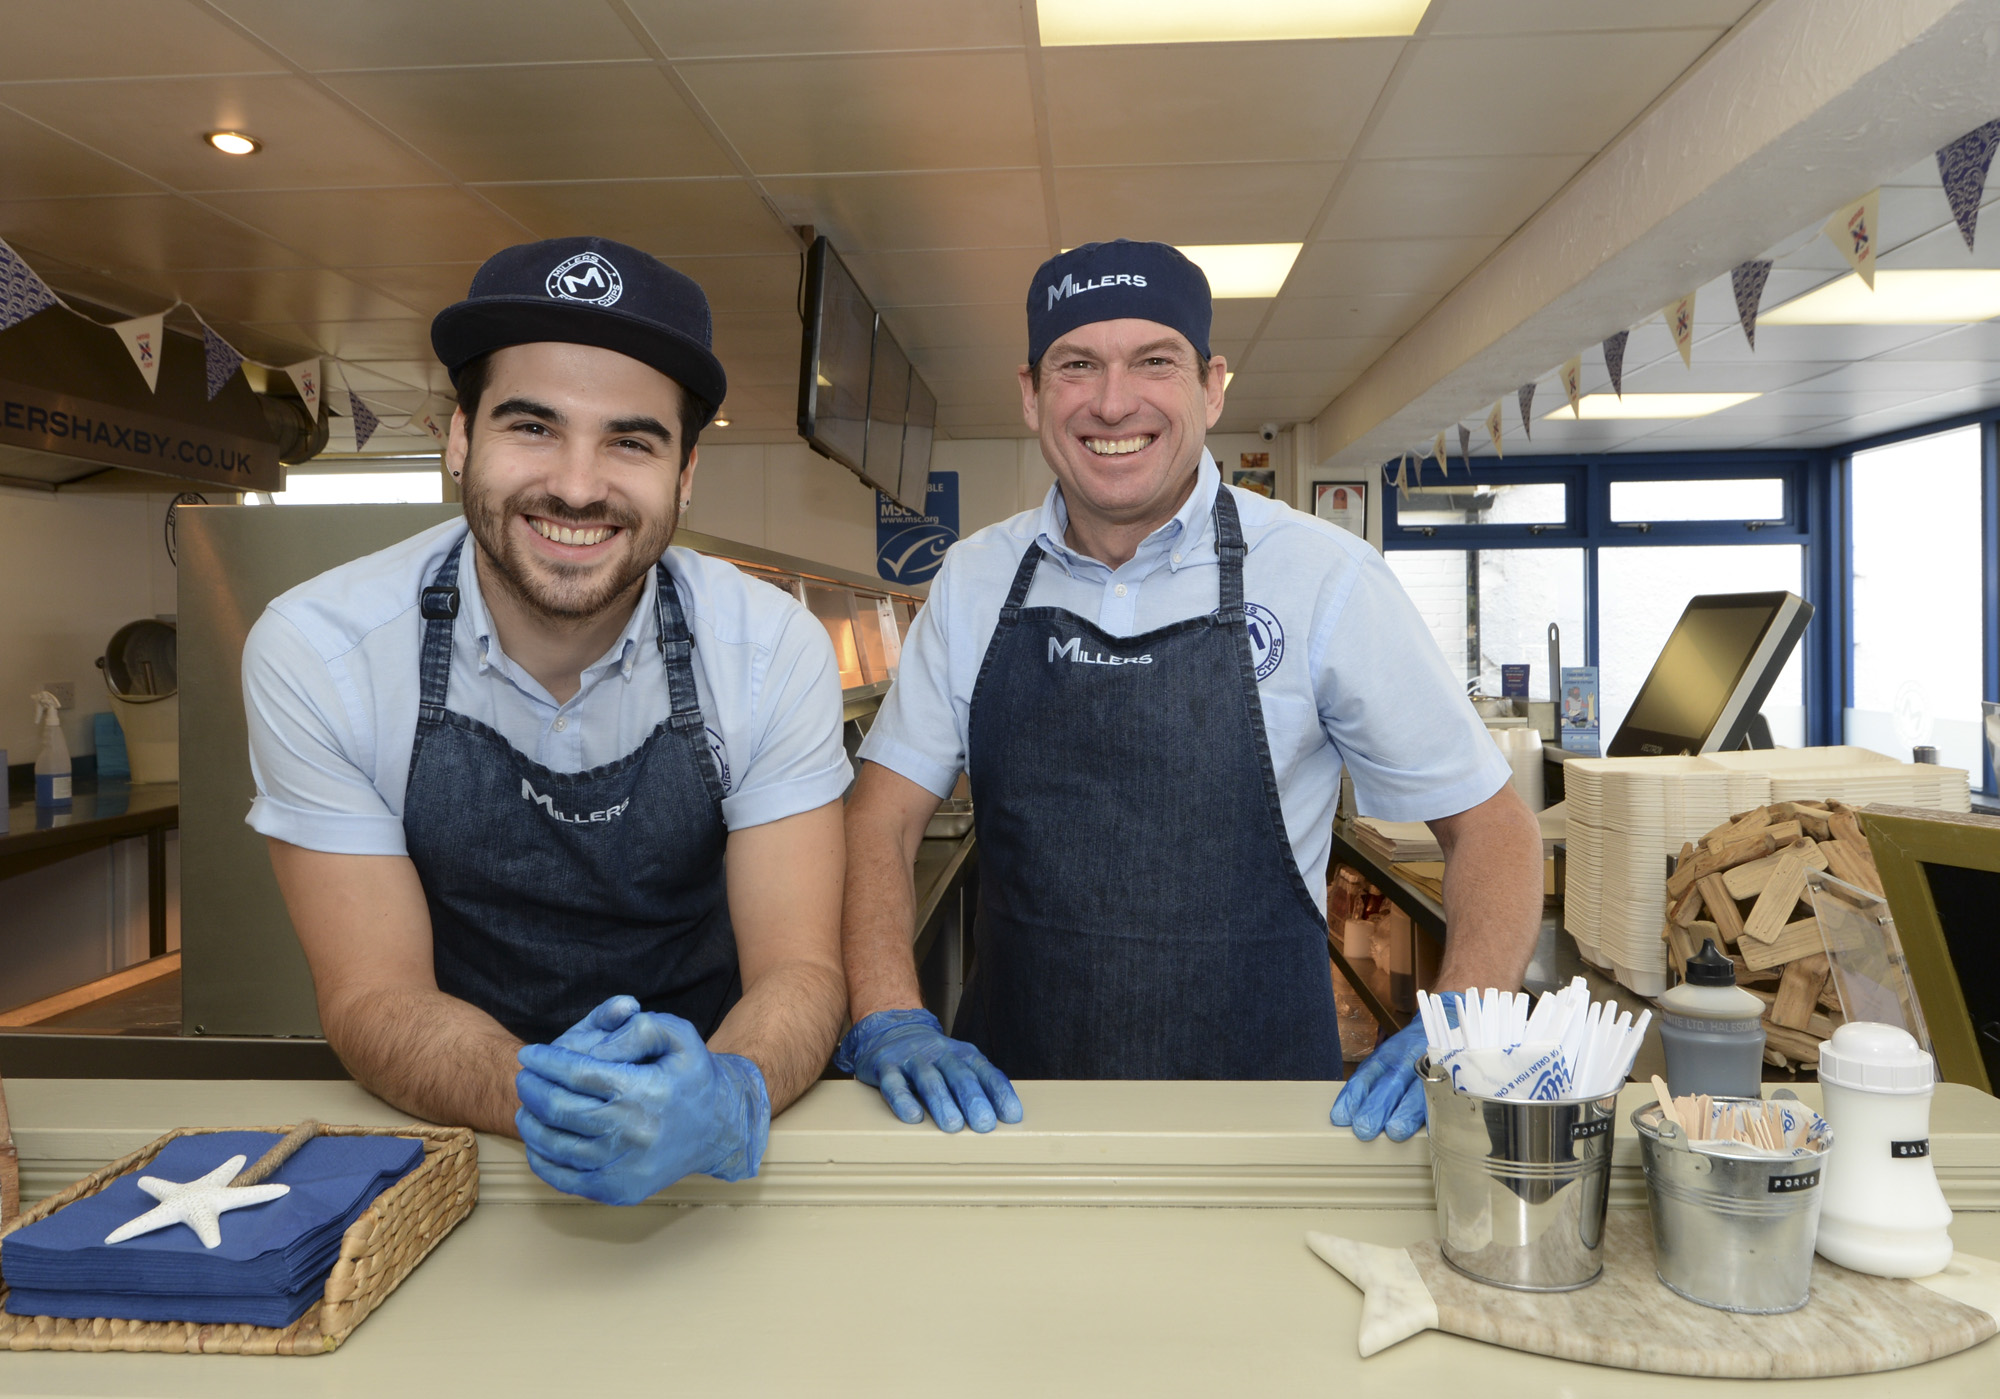 (L-R) Dad, David Miller, and son, Nick Miller of Miller's Fish and Chips in Haxby.jpg